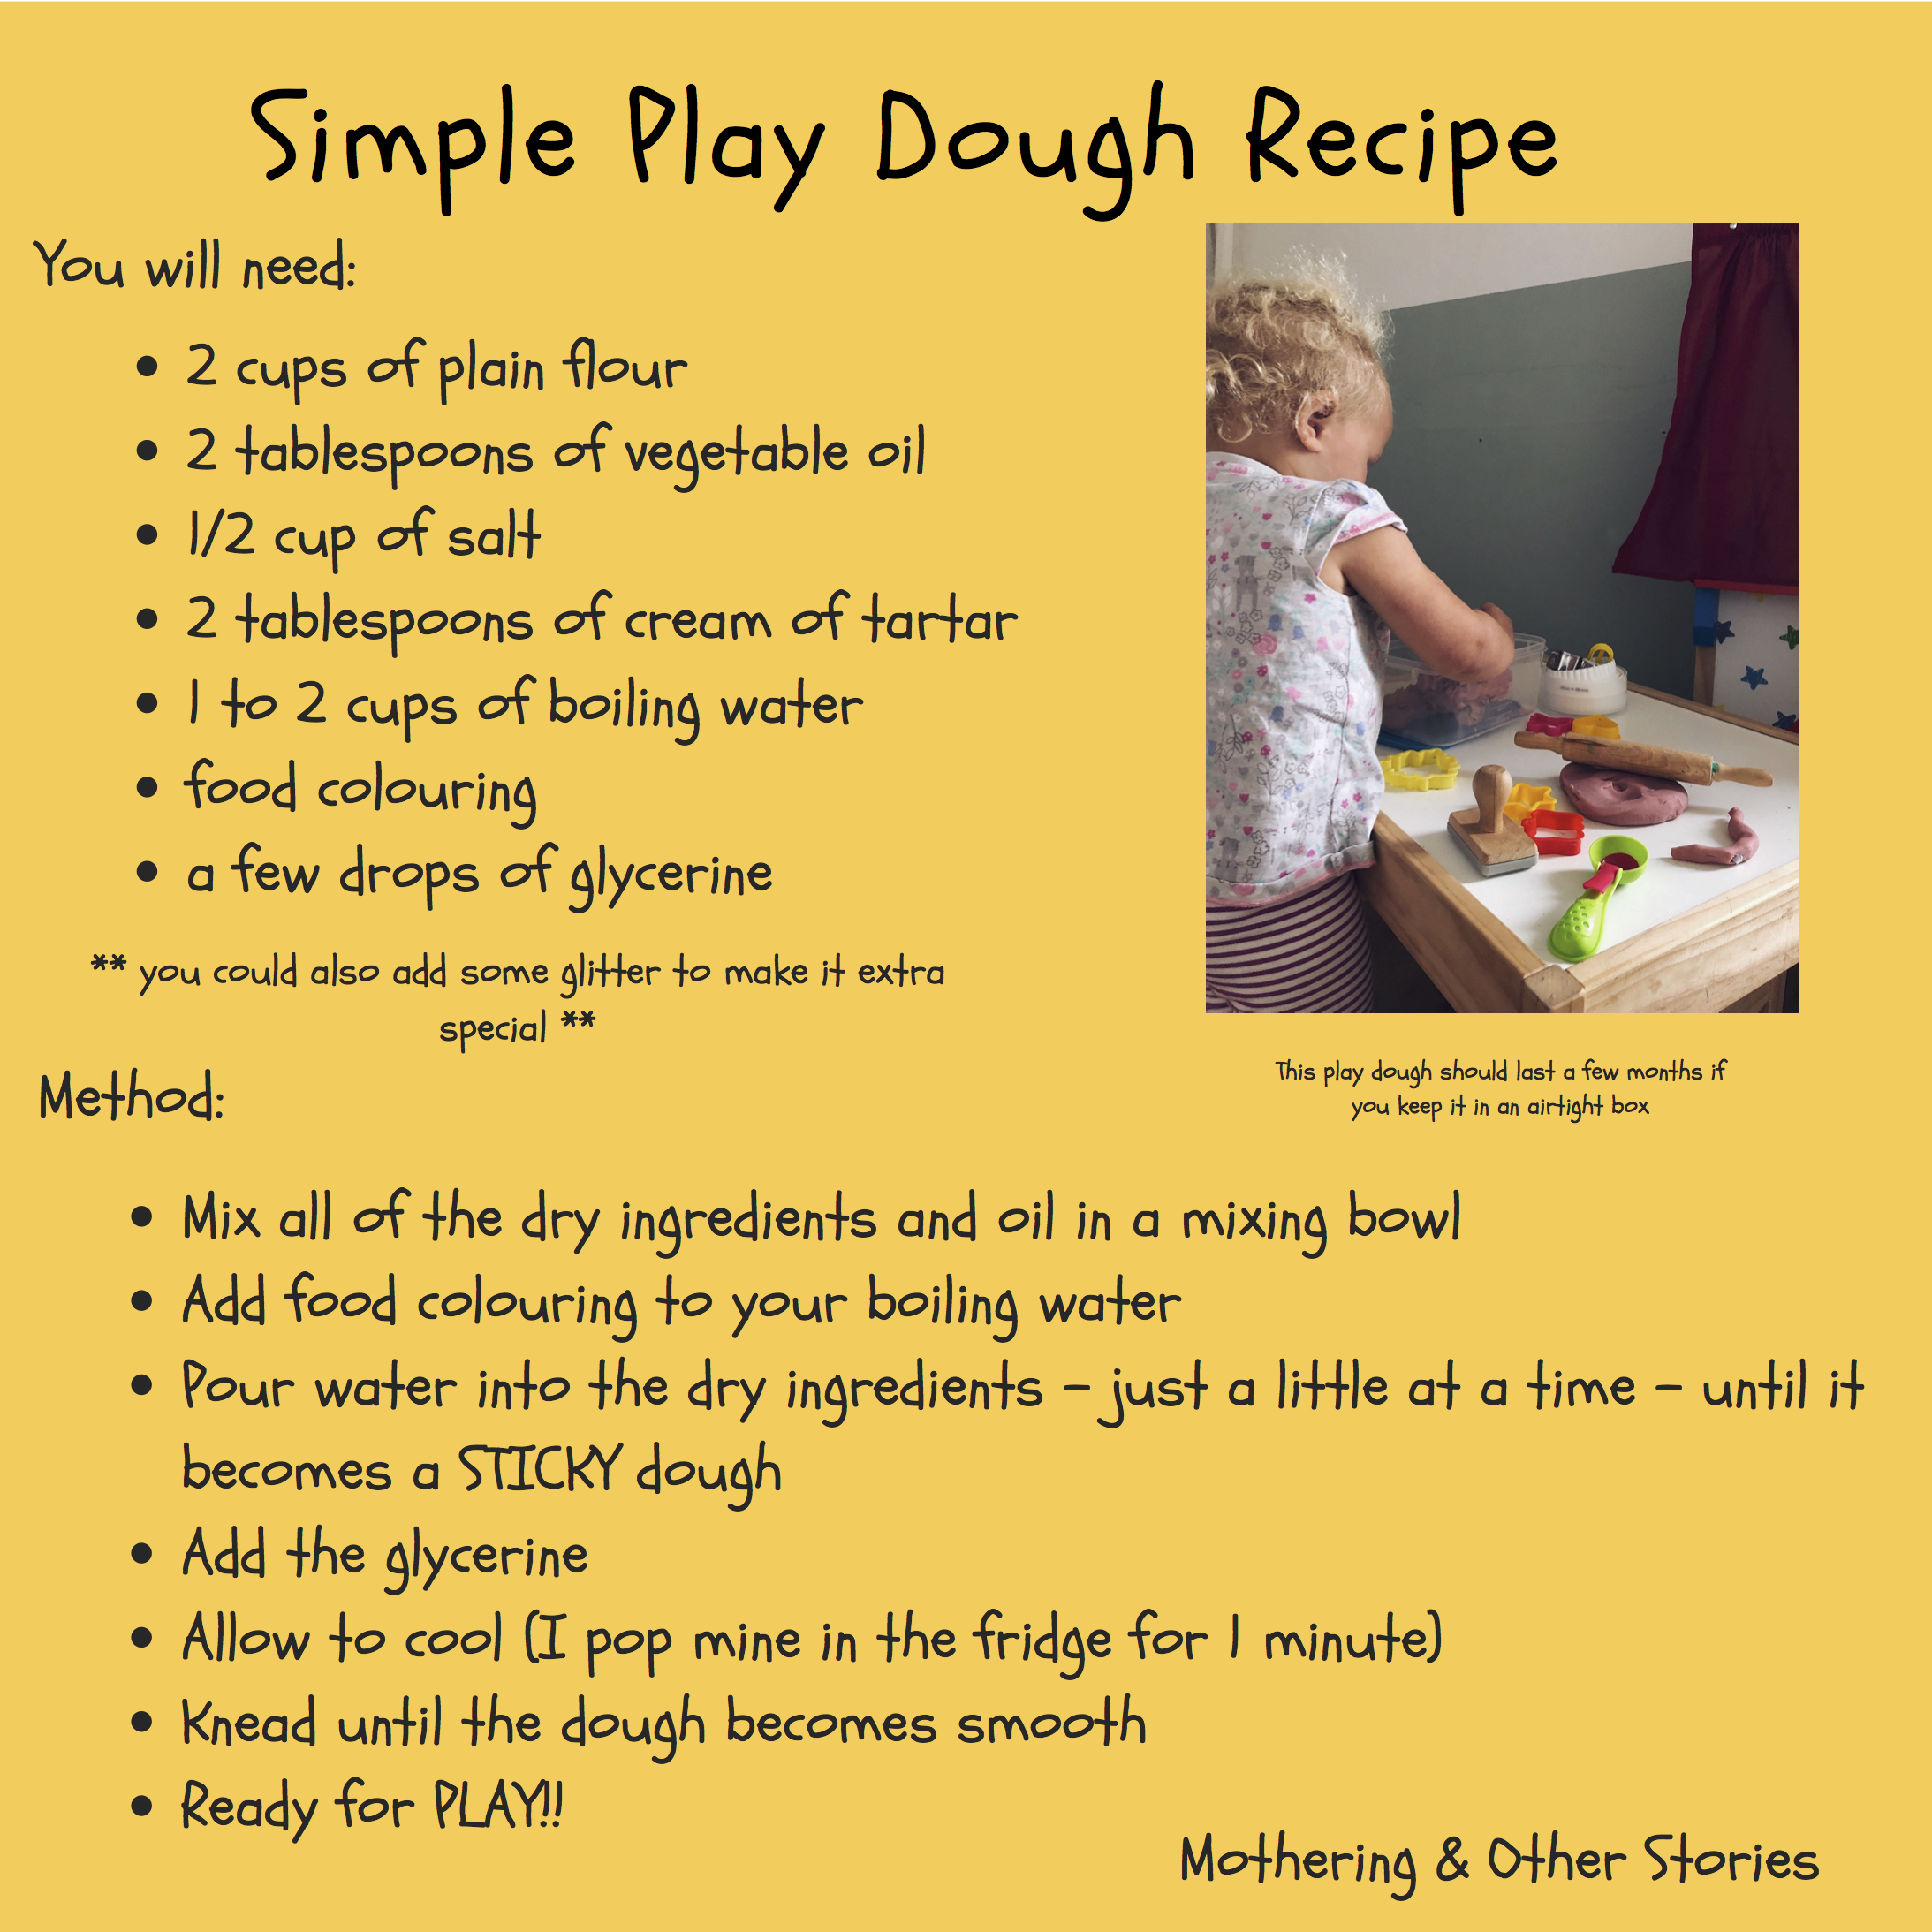 Simple Play Dough Recipe.jpg